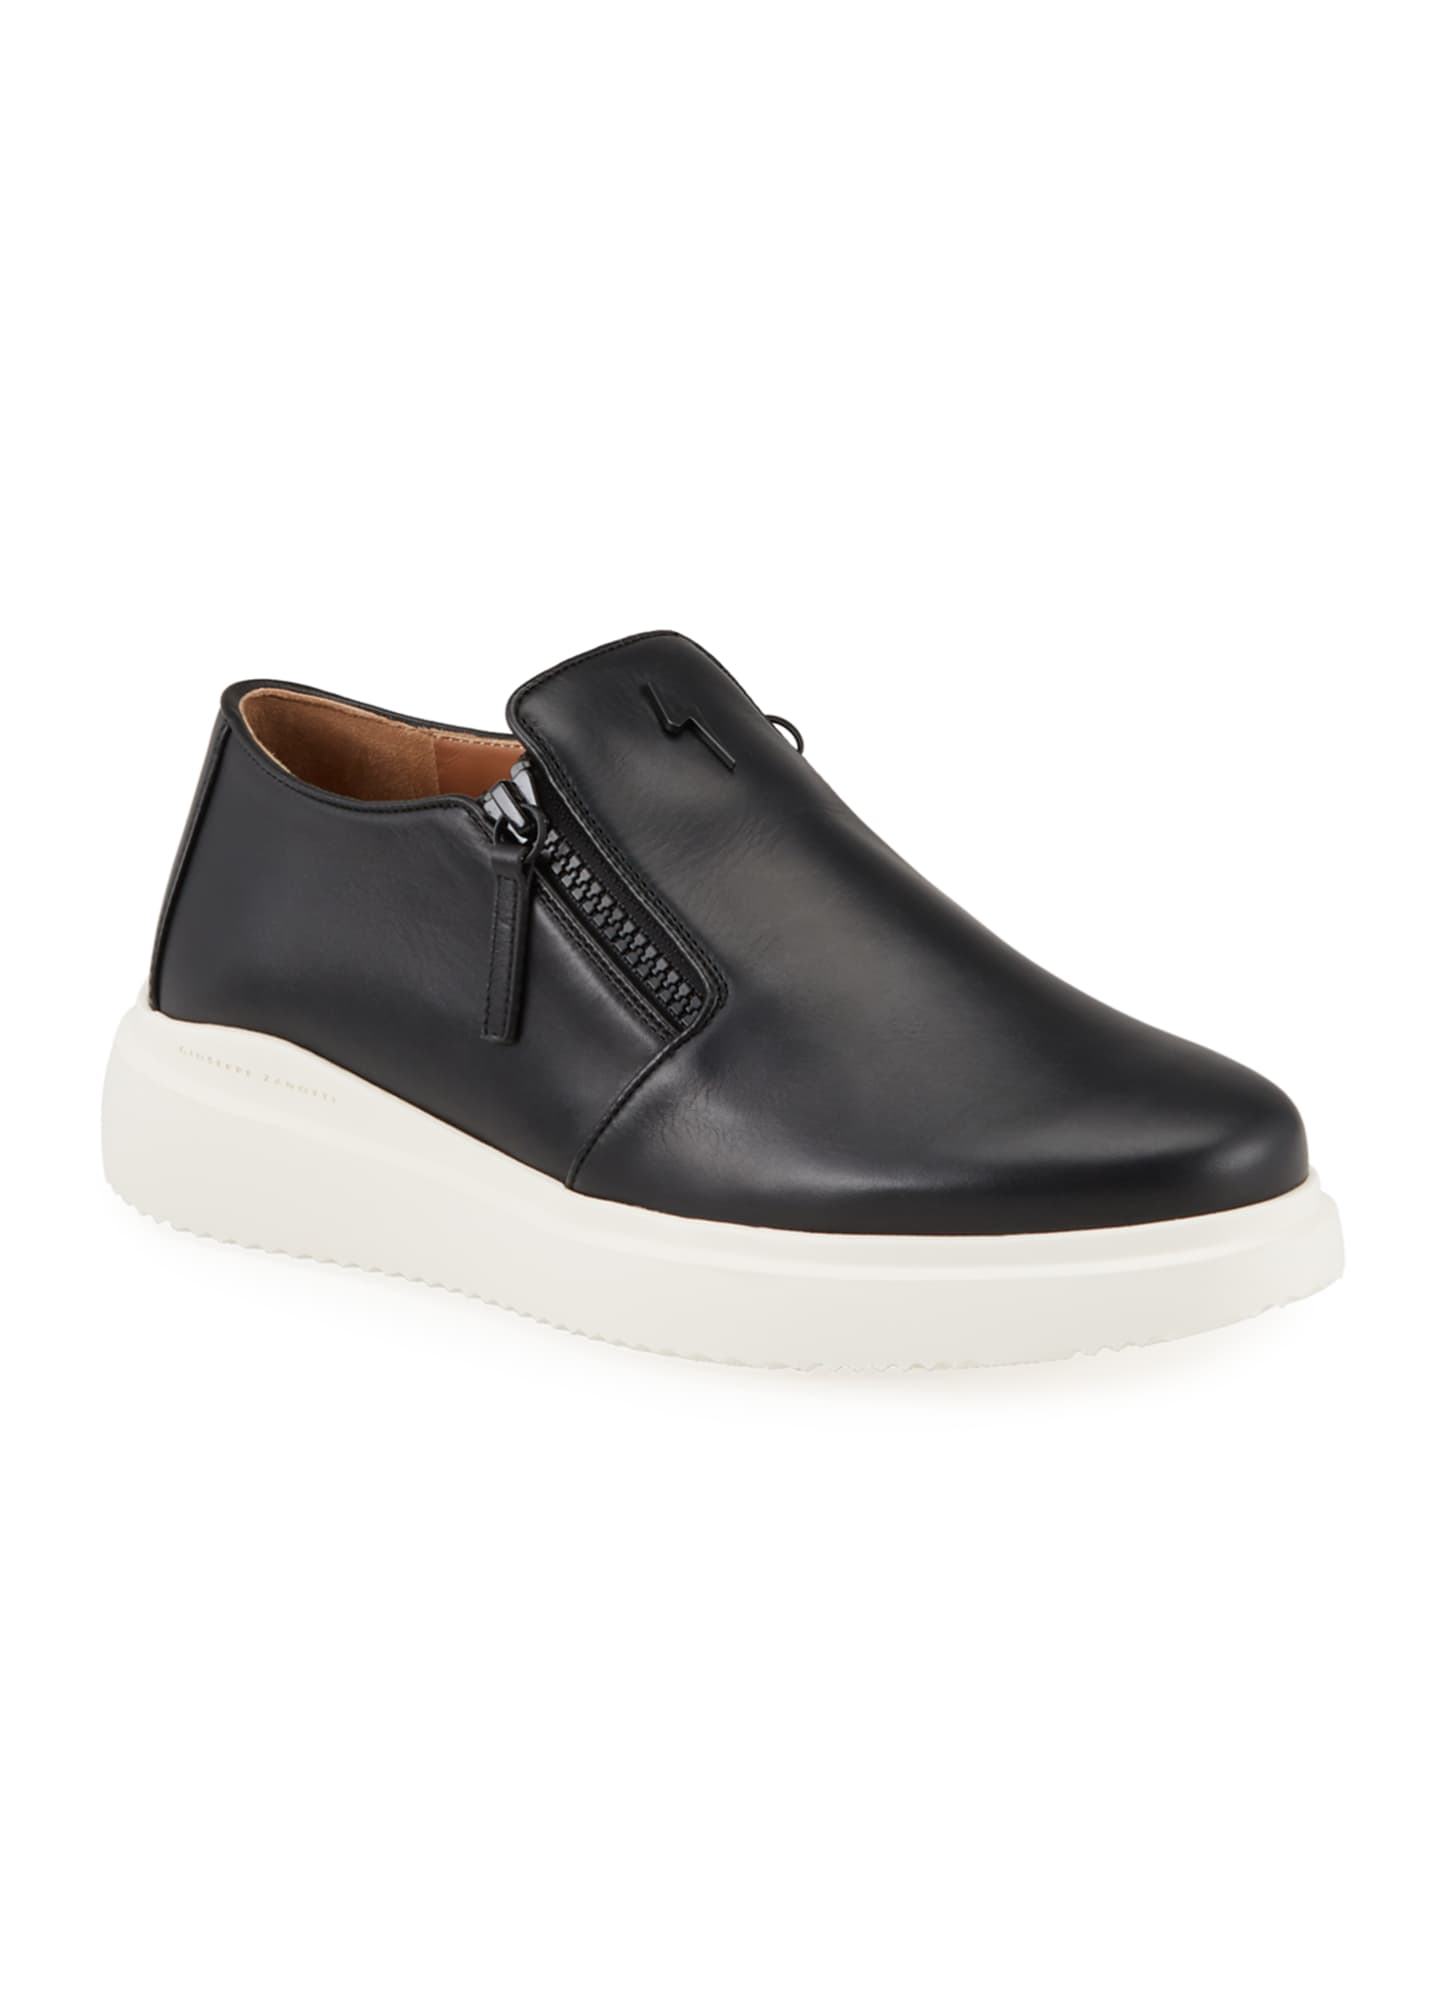 Men's Leather Slip-On Zip Sneakers